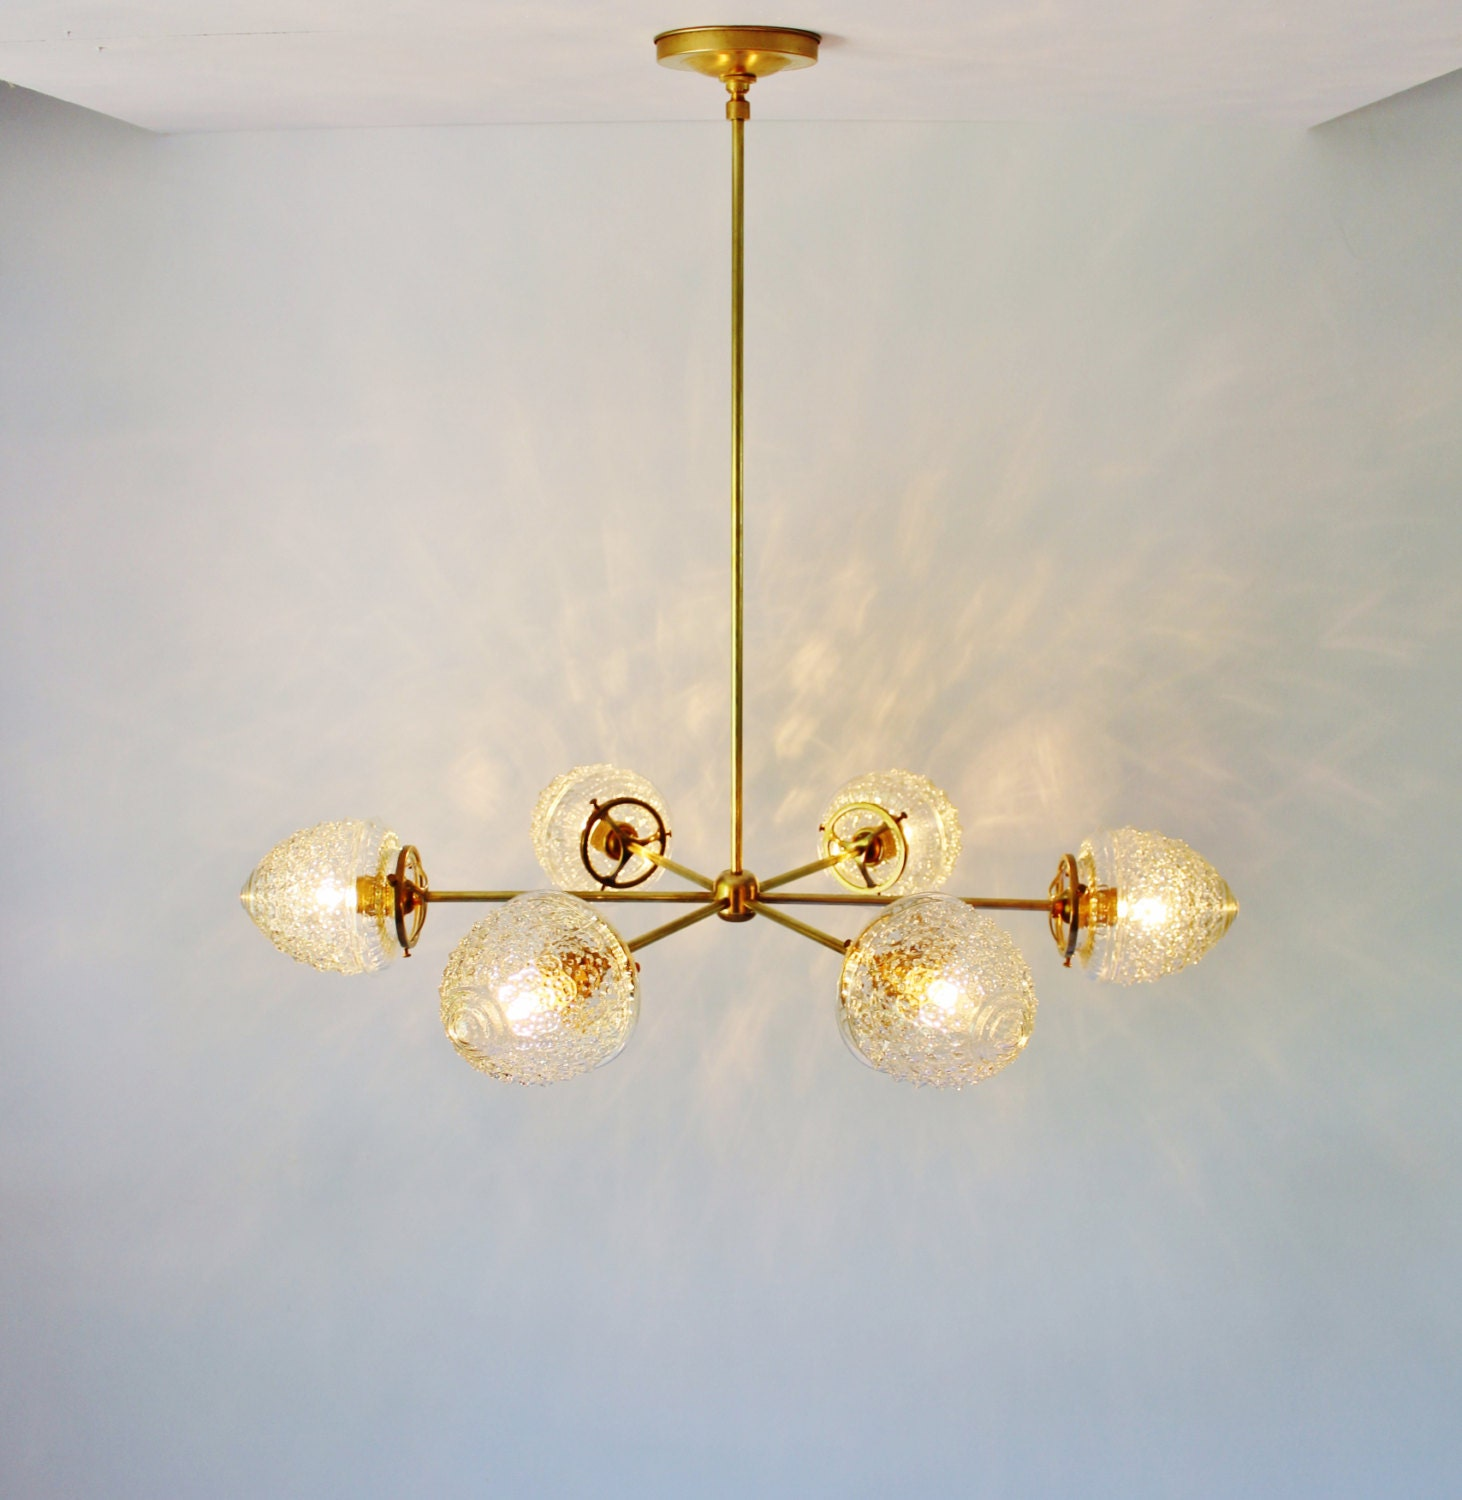 Modern Brass Chandelier With Clear Glass Acorn Shades 6